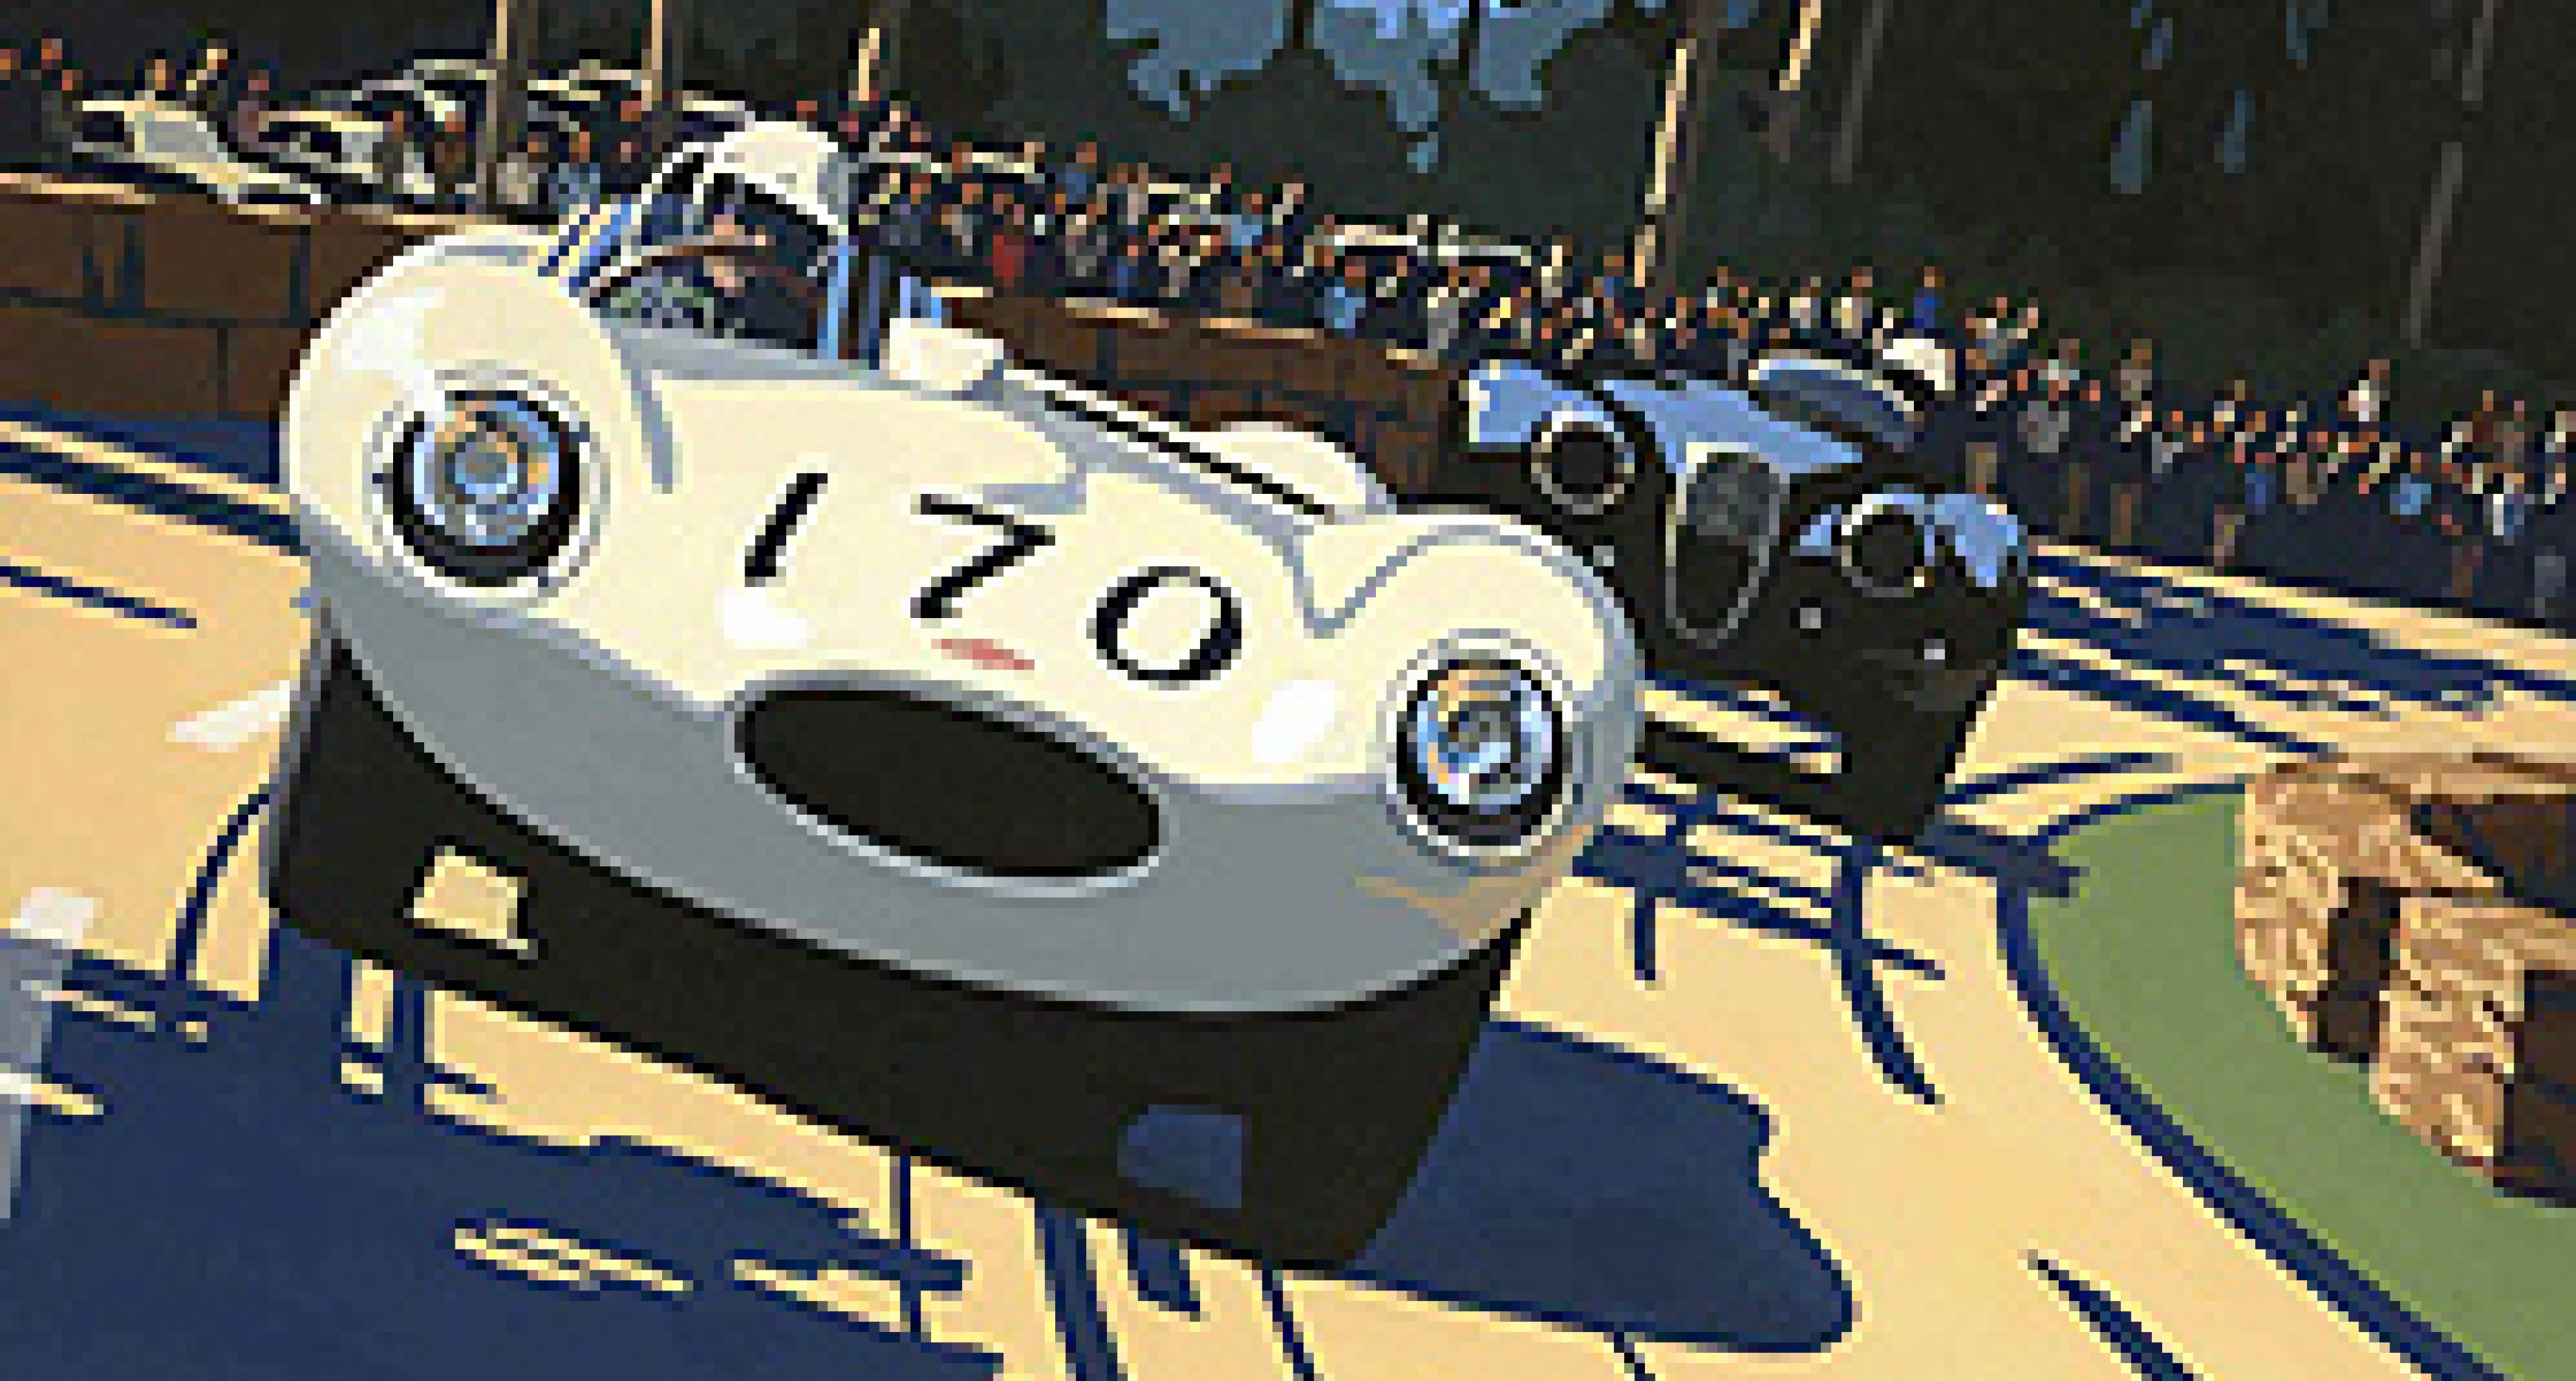 Monterey und Pebble Beach 2010 Event Guide